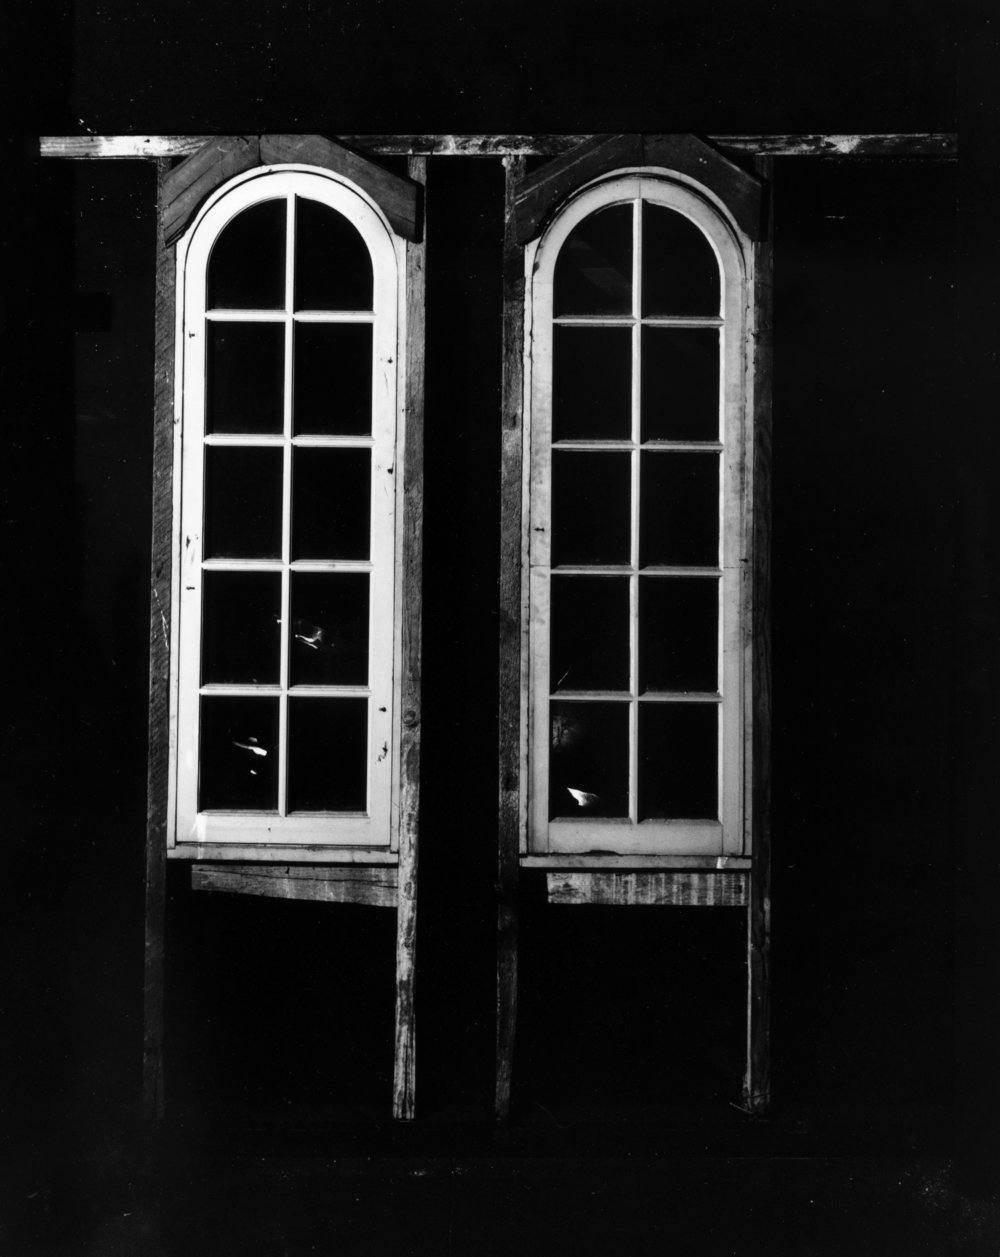 Tower Window (Interior), Silver Gelatin Print, 2018